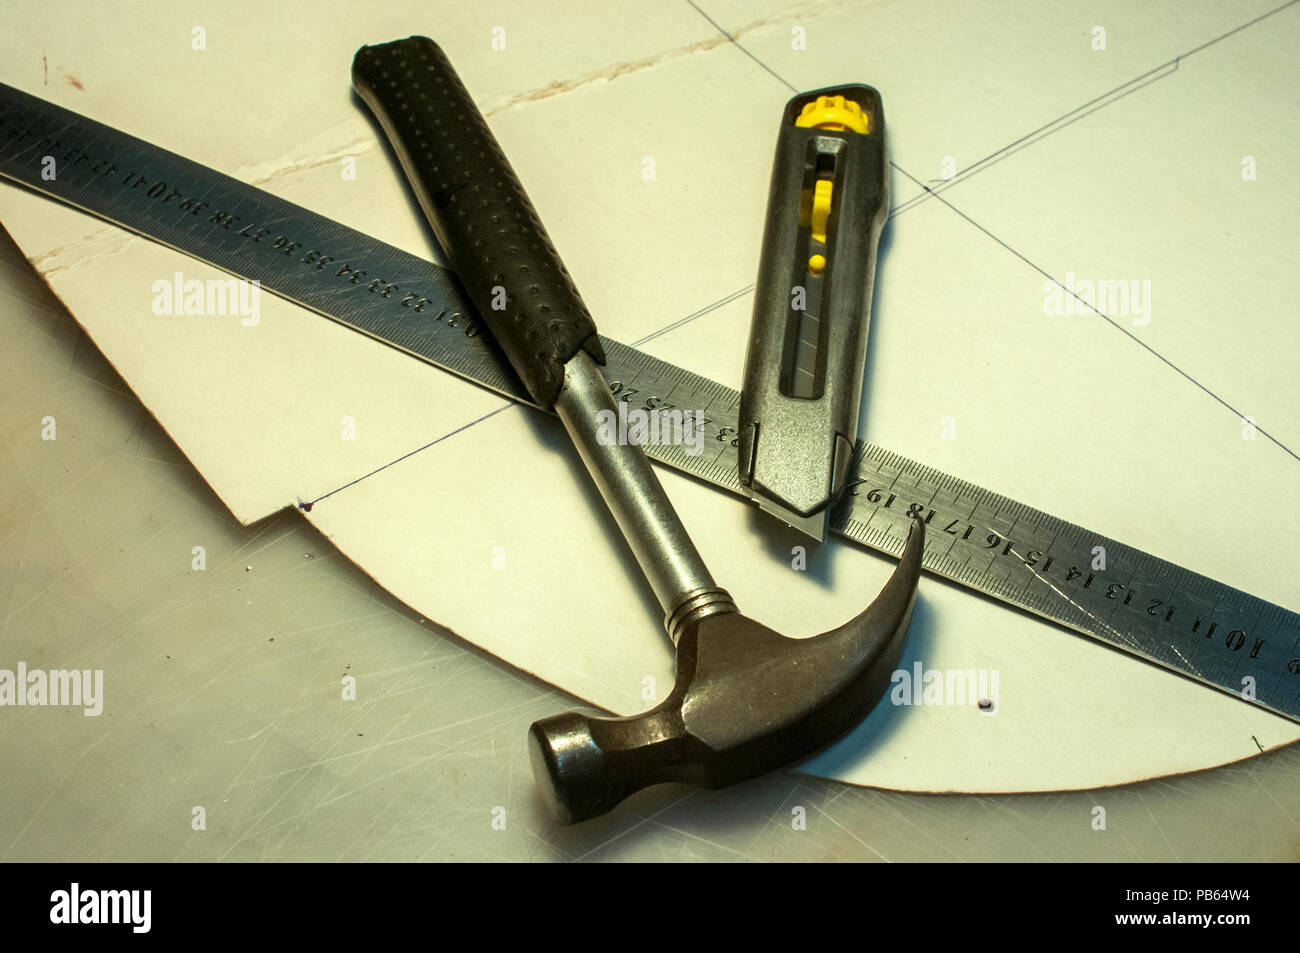 Hammer, metal ruler, cutter knife and cardboard cuts as tools in workshop production of leather goods - Stock Image